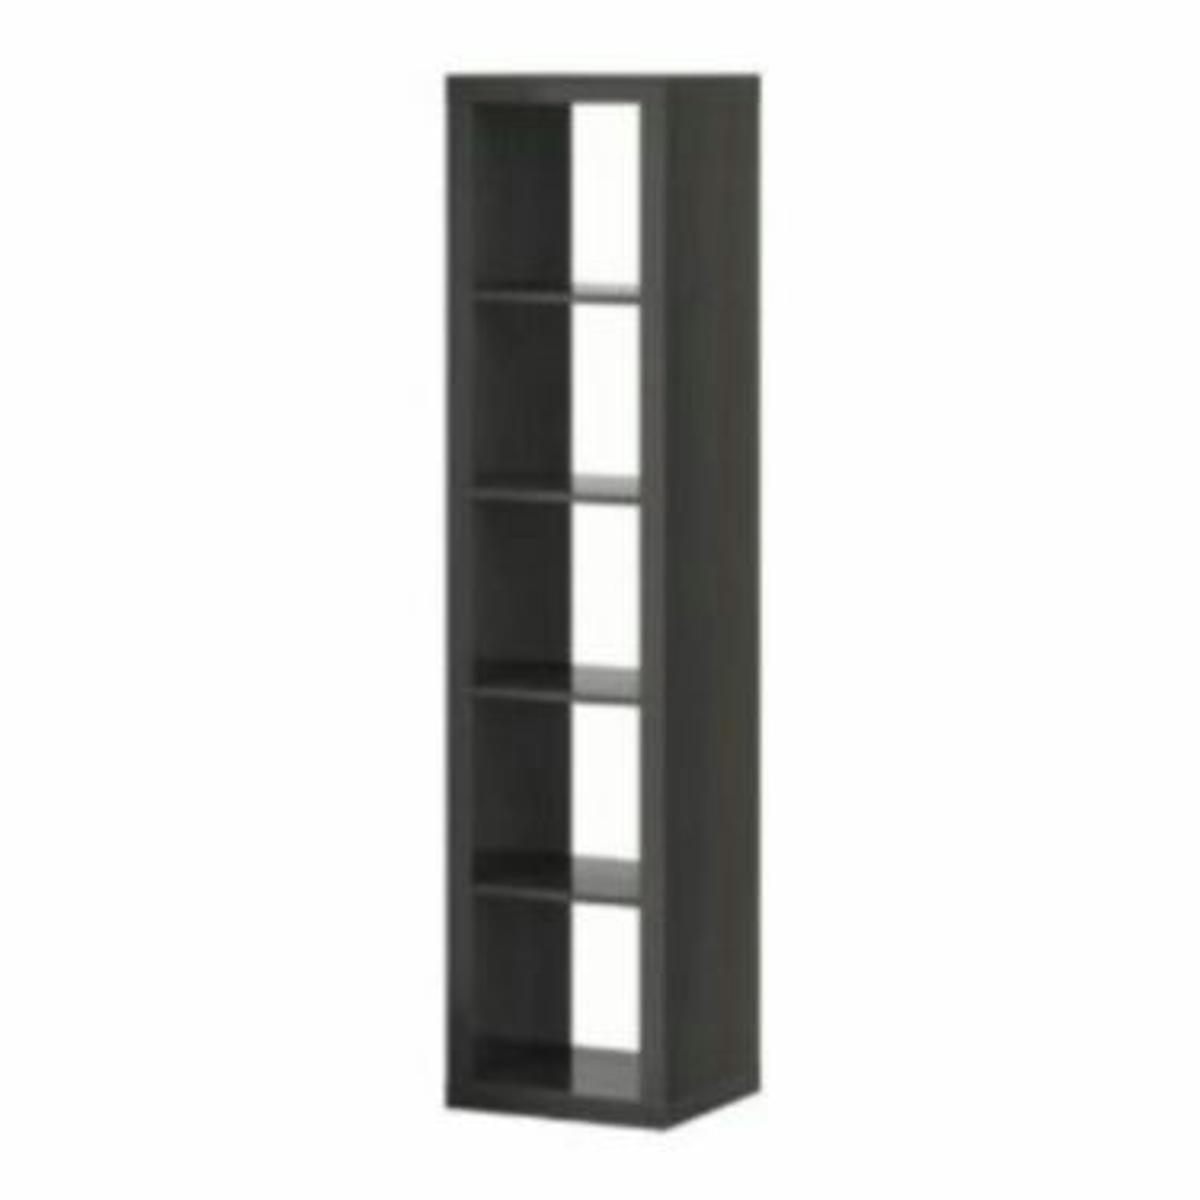 Nussbaum Regal Ikea Ikea Expedit Regal 1x5 Nussbraun Nussbaum